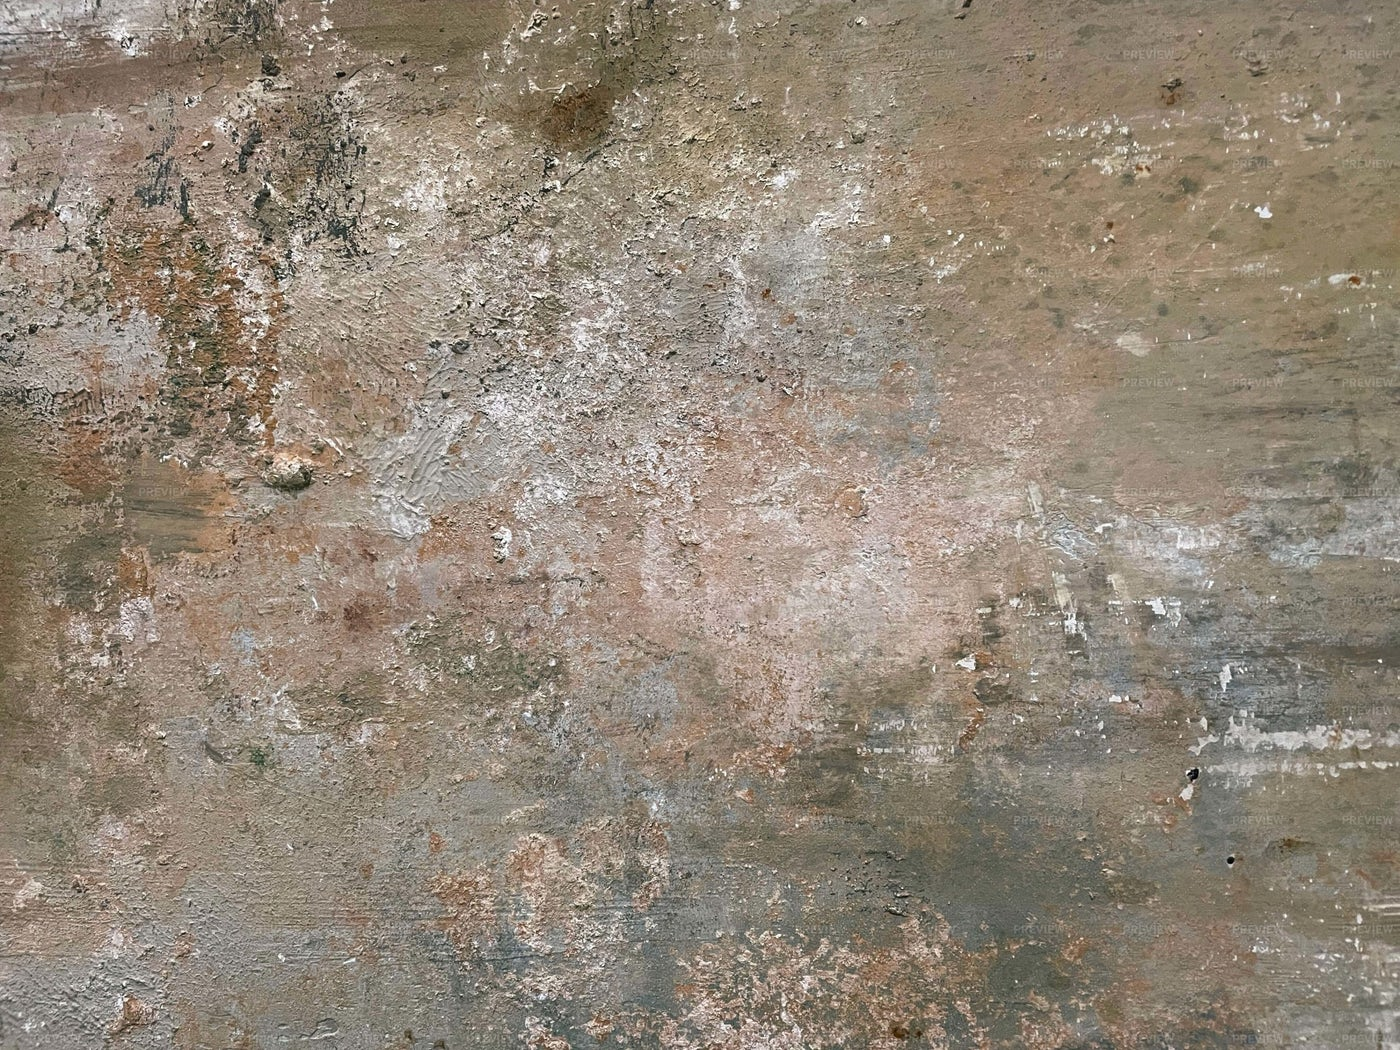 Grunge Painted Wall Background: Stock Photos